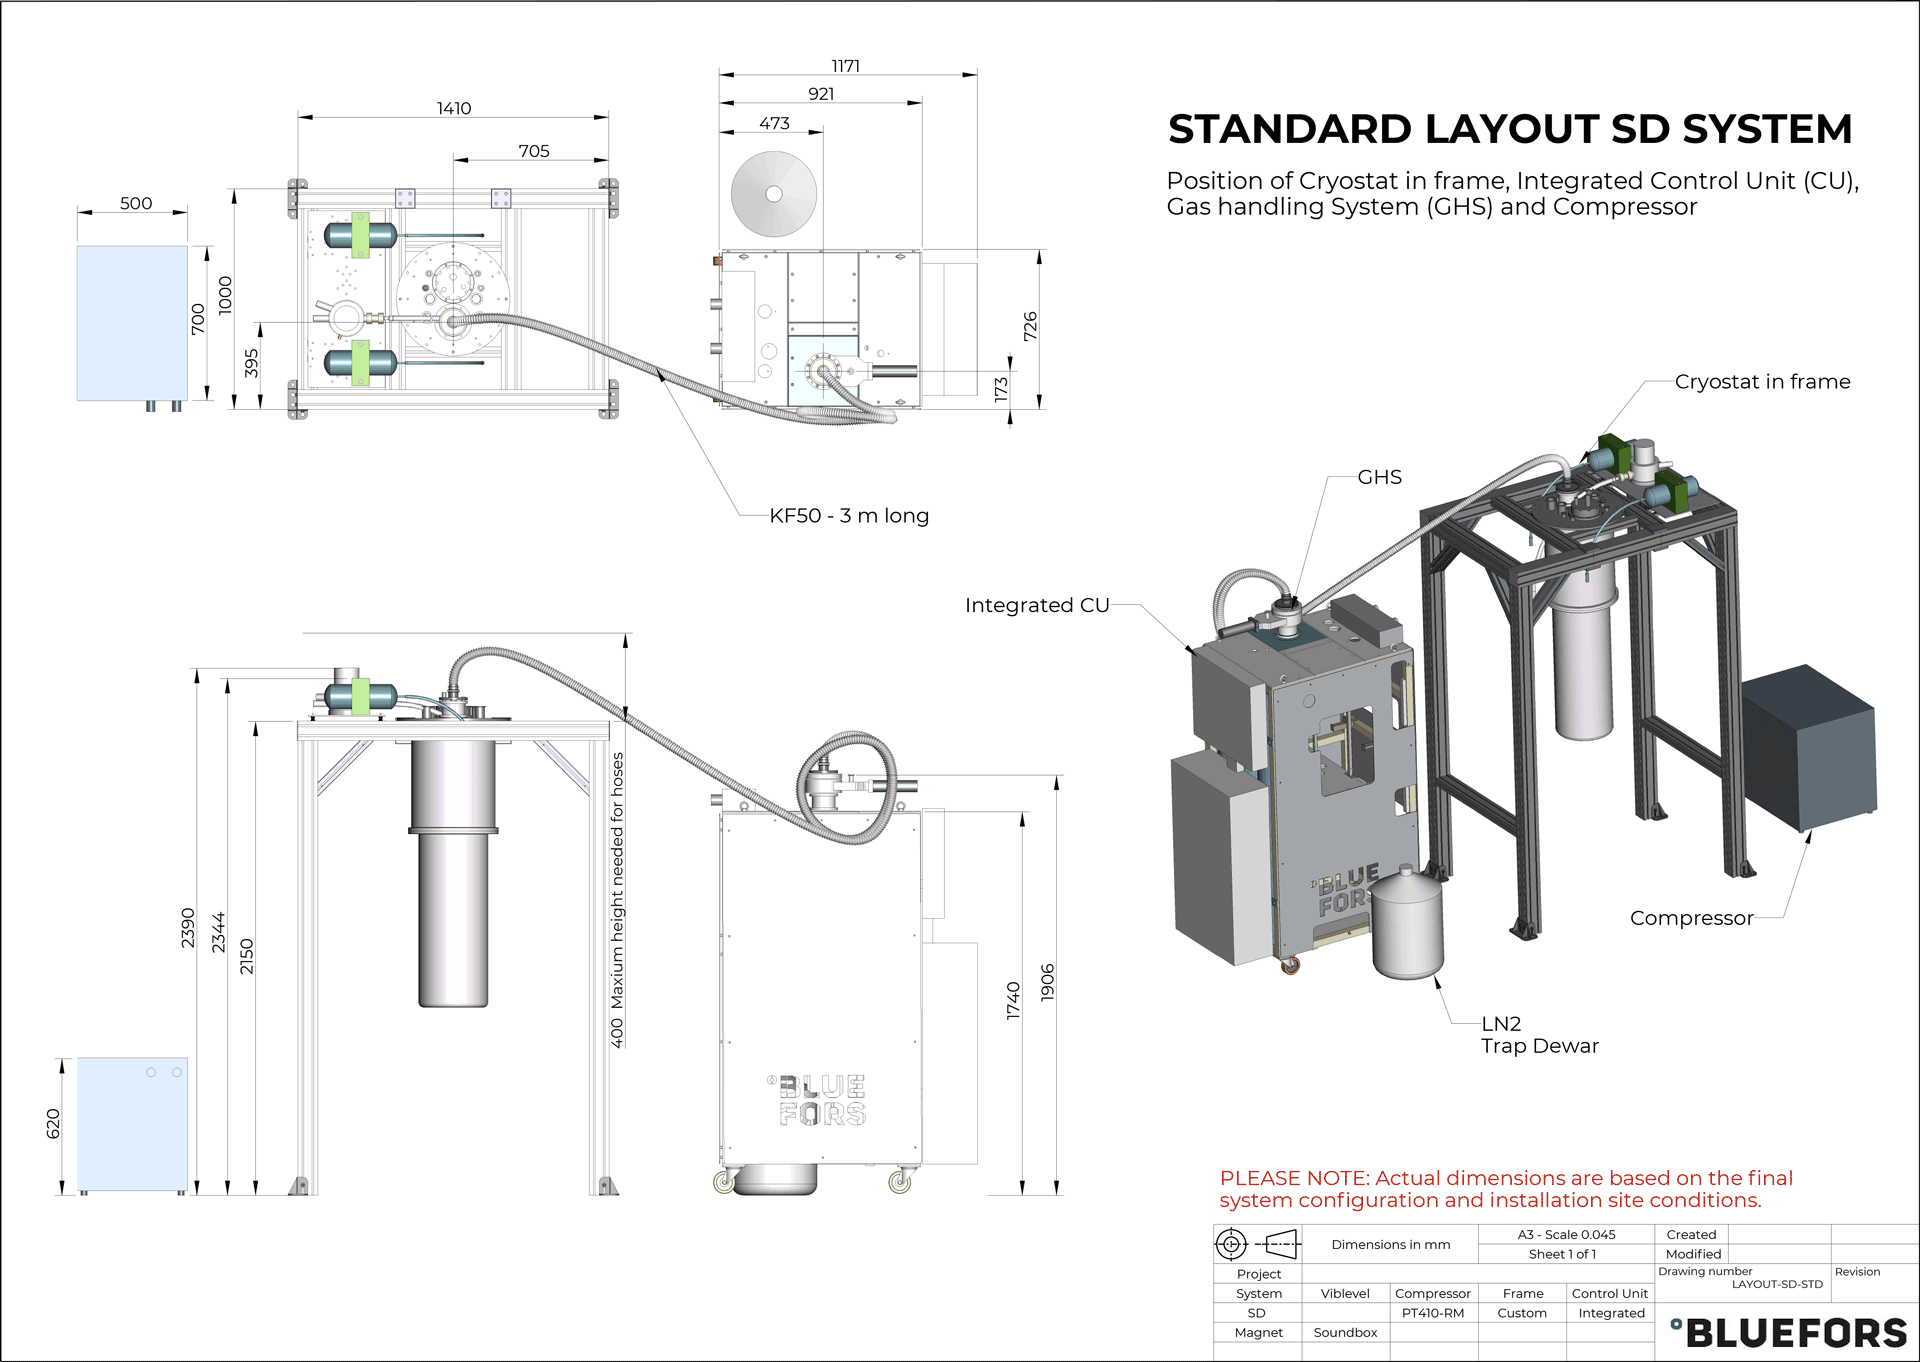 Bluefors dilution refrigerator LAYOUT SD STANDARD 2019